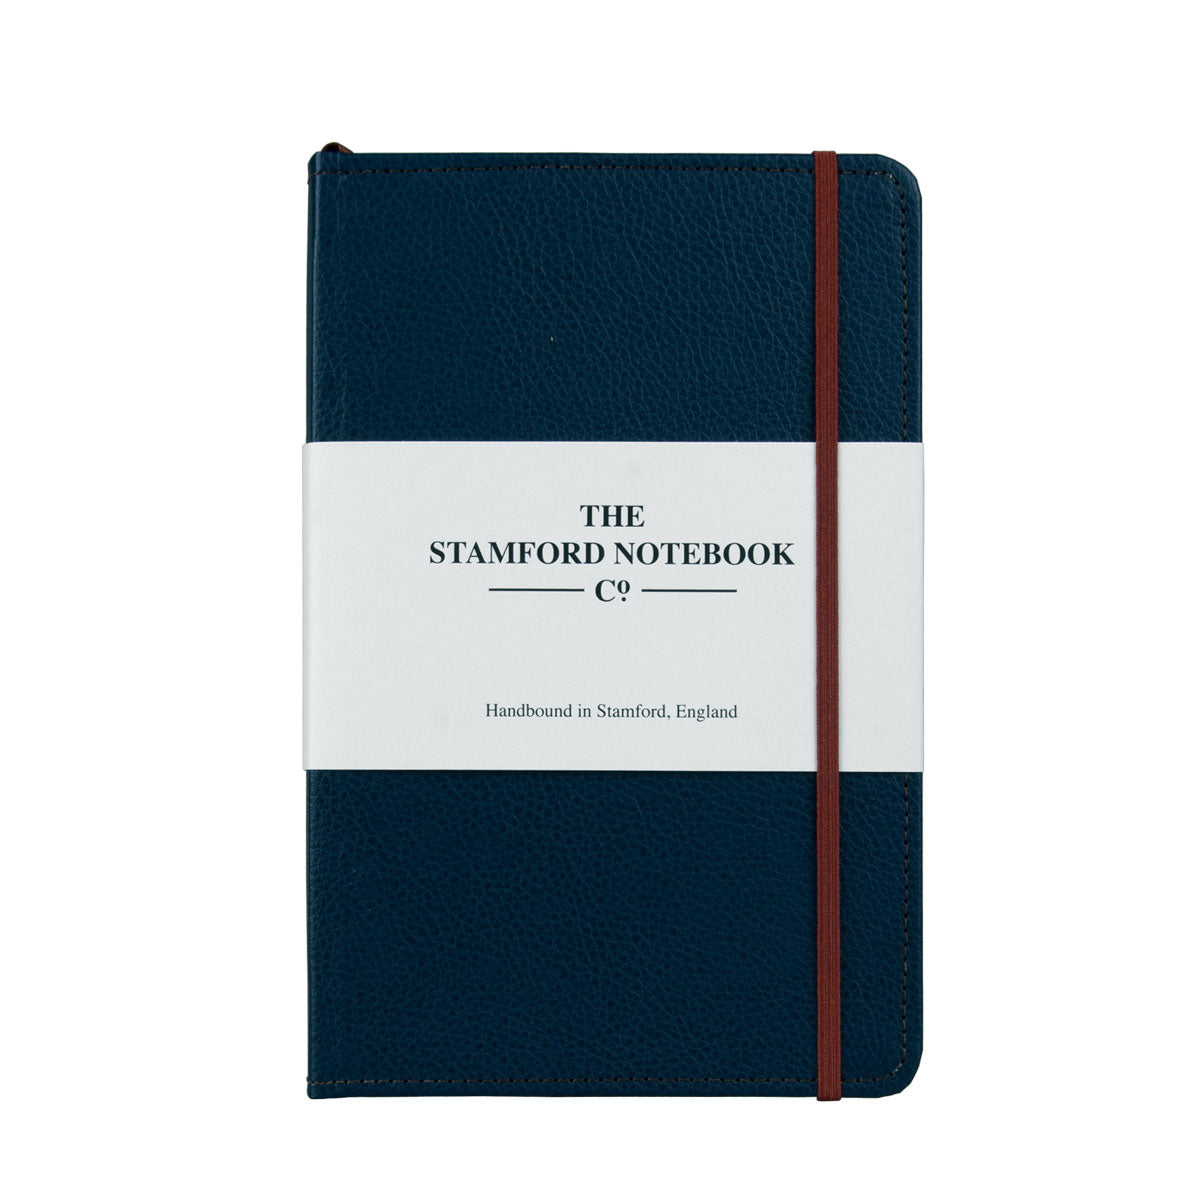 Marine Blue leather notebook with brown stitching